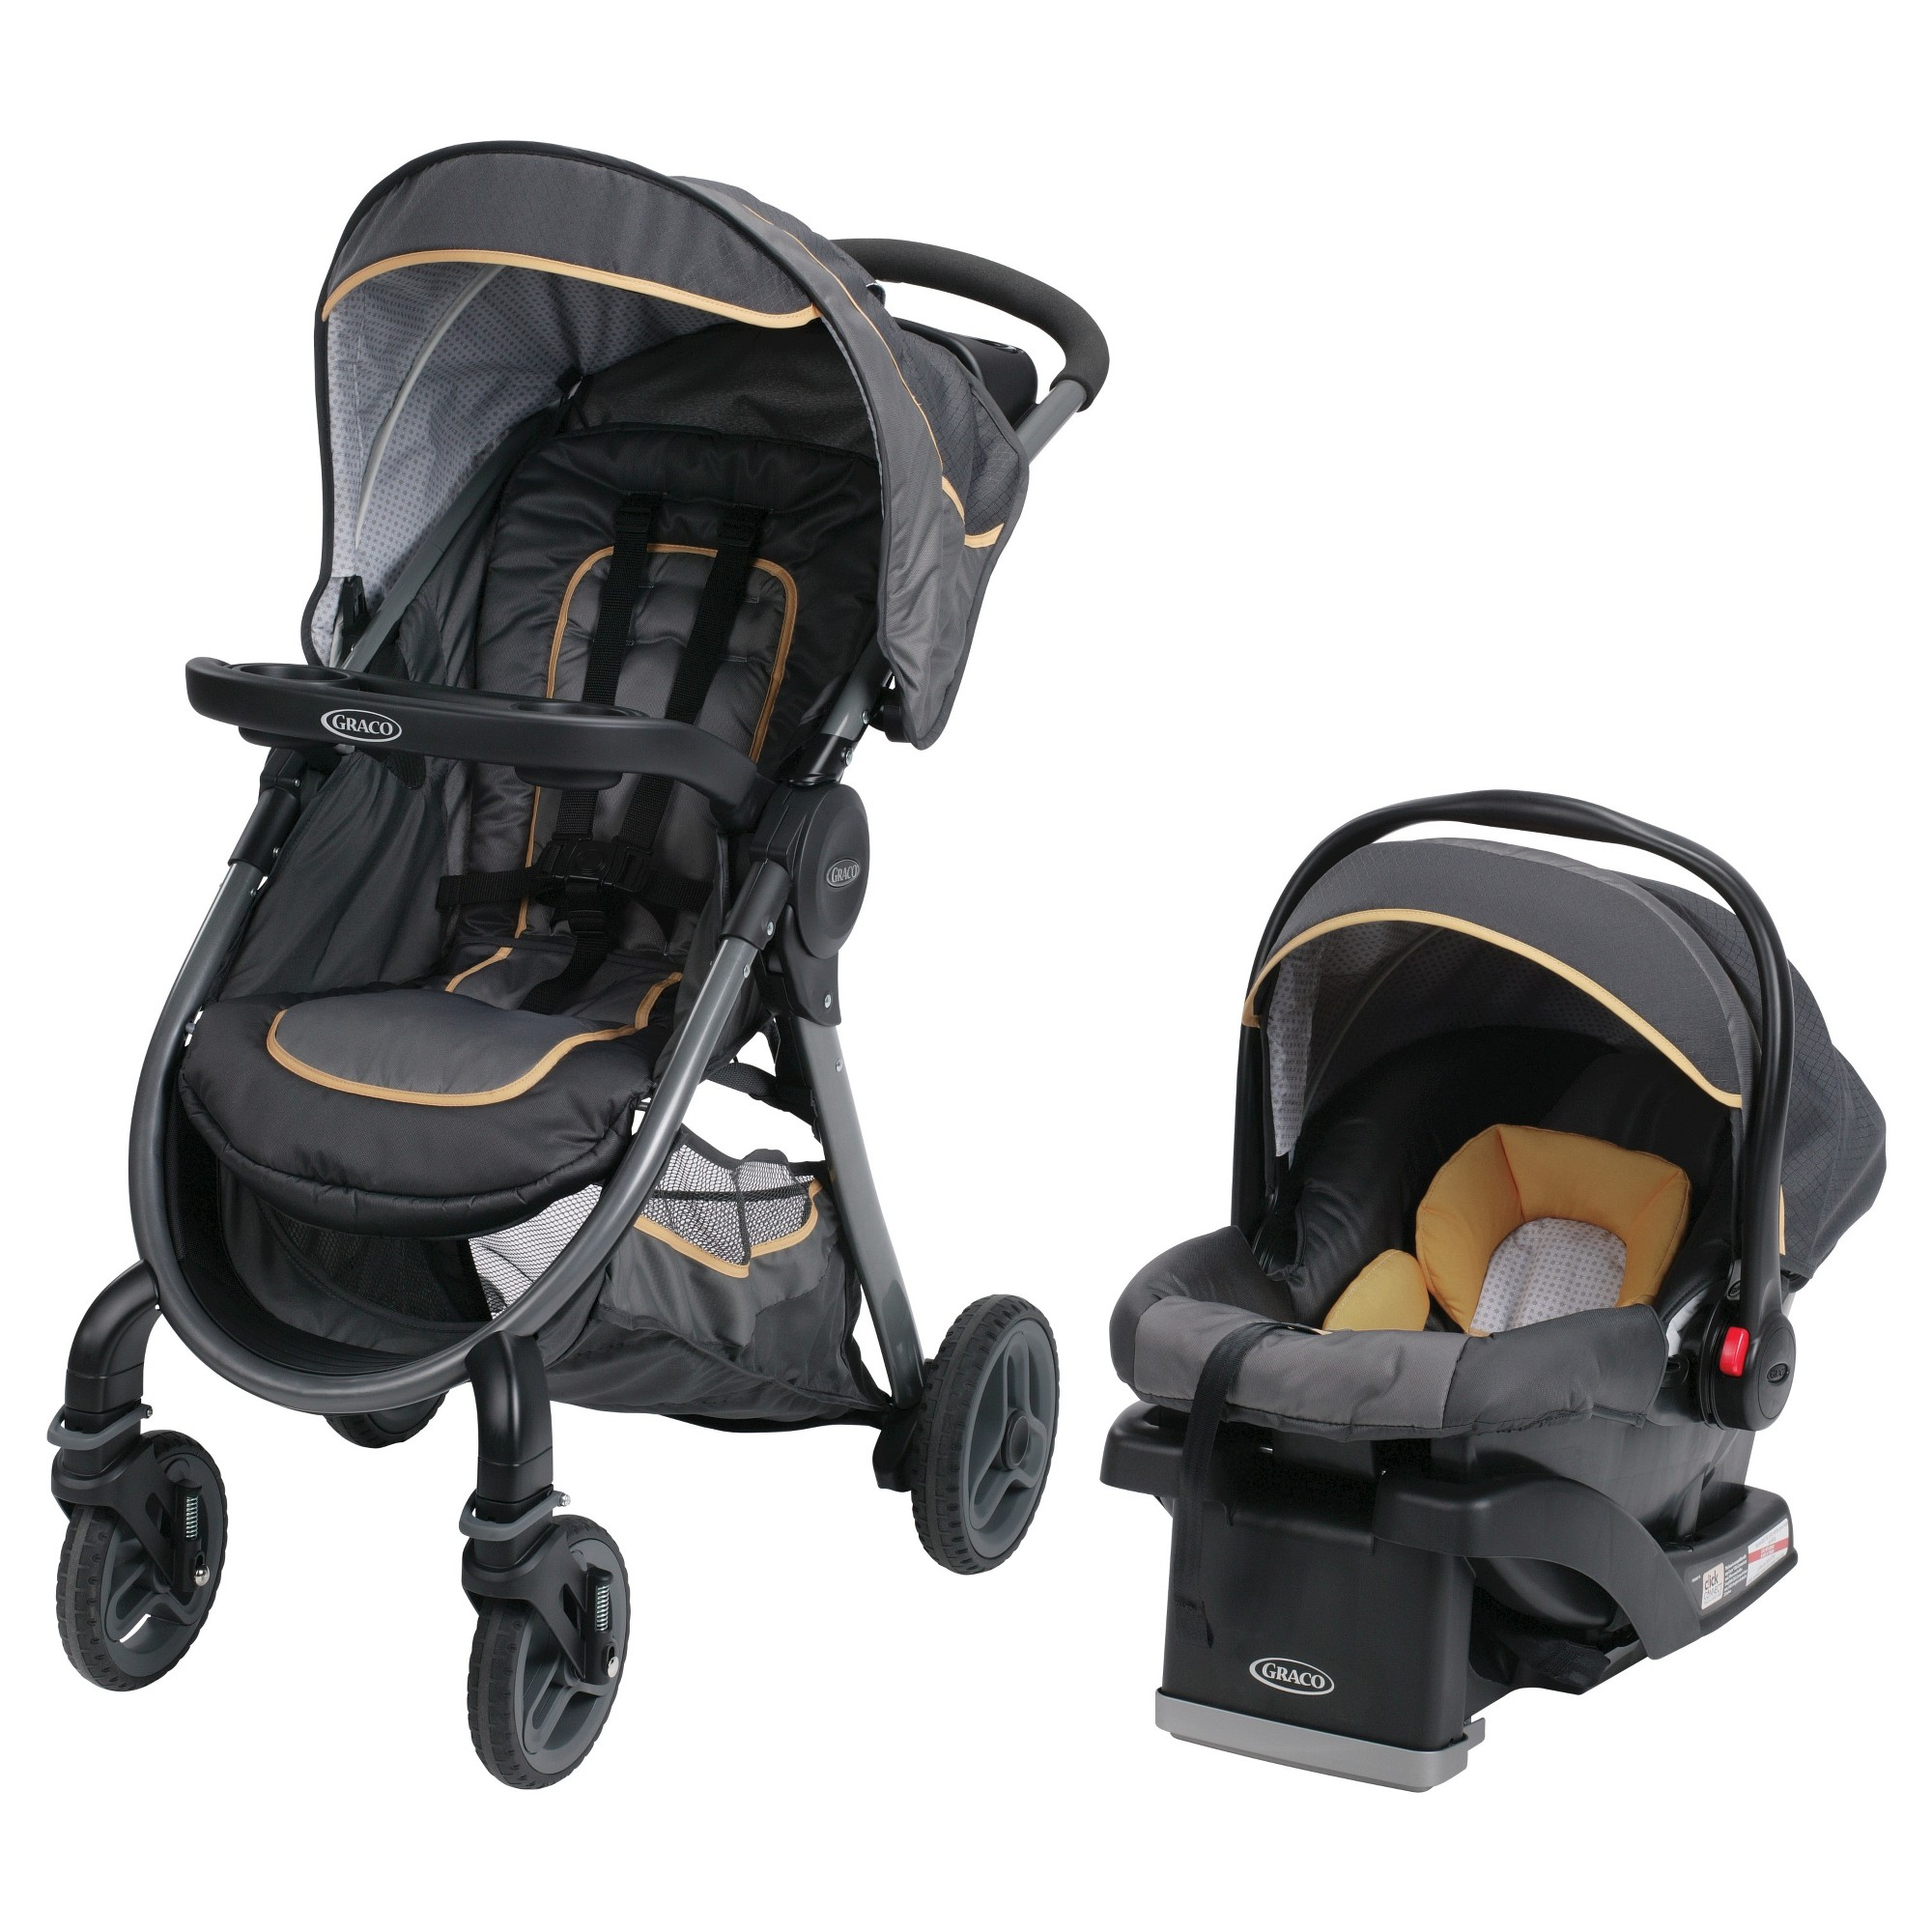 111 reference of graco stroller and car seat teal in 2020